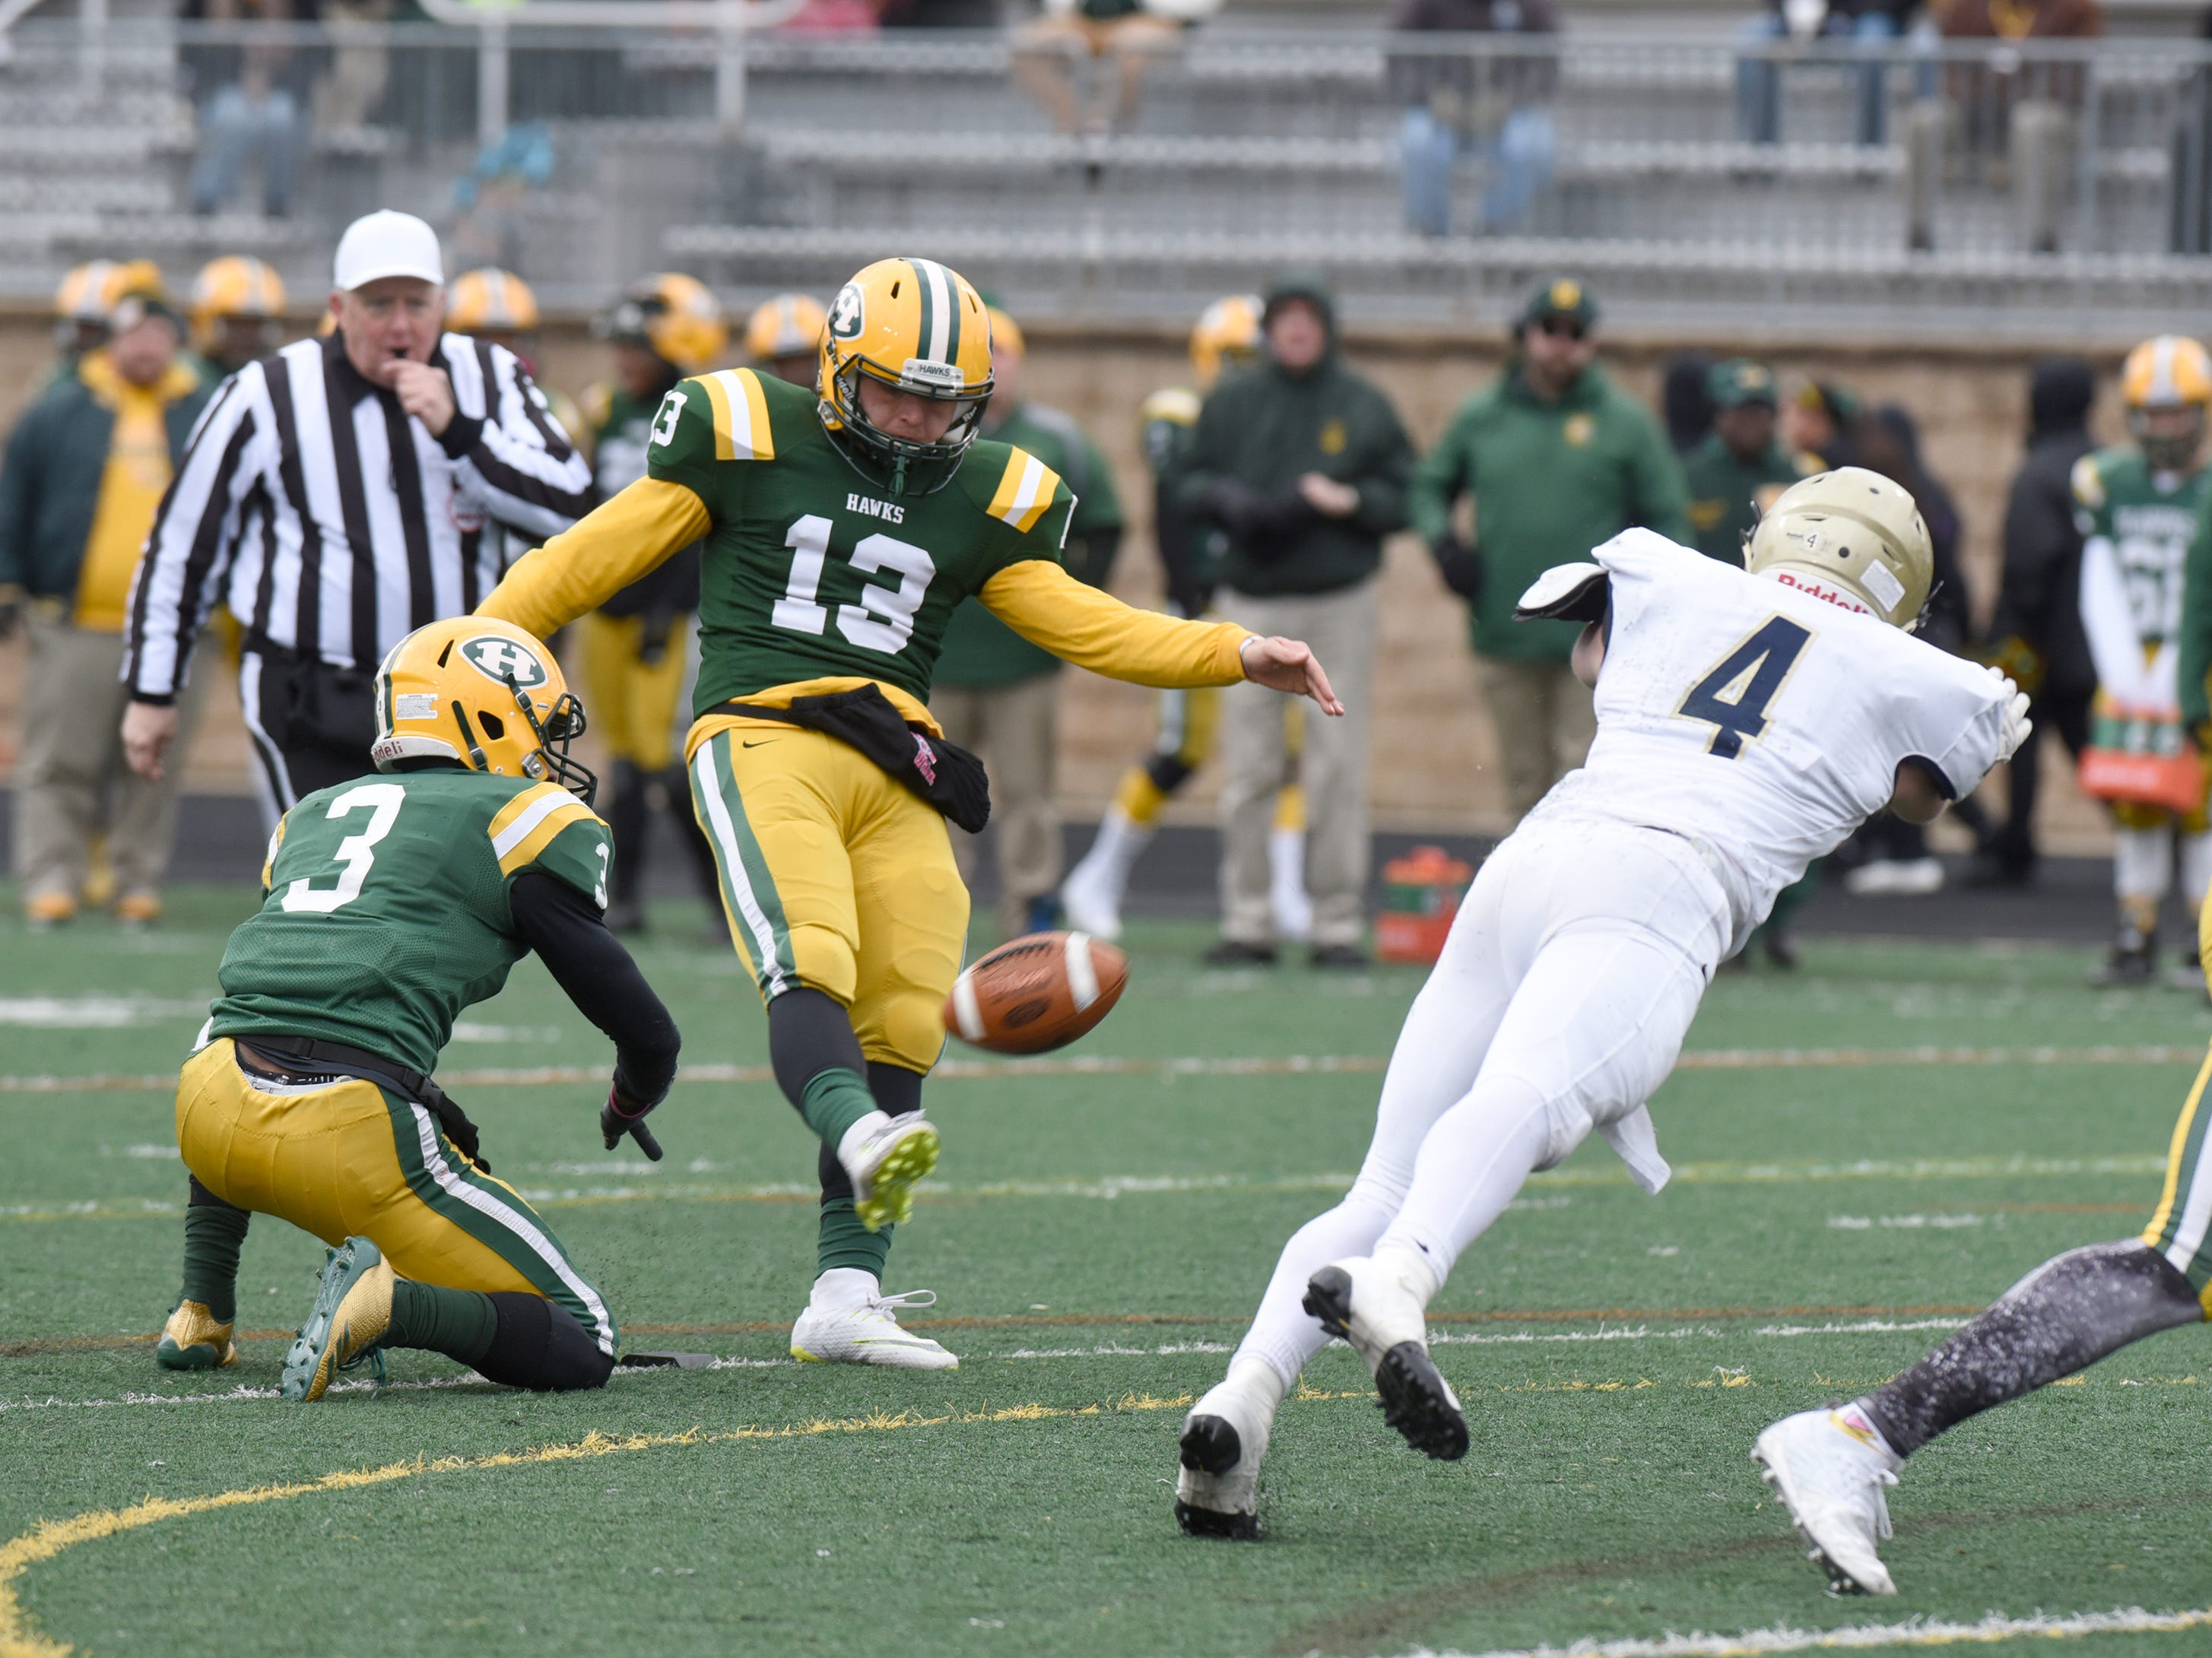 Farmington Harrison Kicker/QB David Hiser (13) is good on the extra point during second half of the Division 4 regional final played at Buller Field Nov. 10, 2018